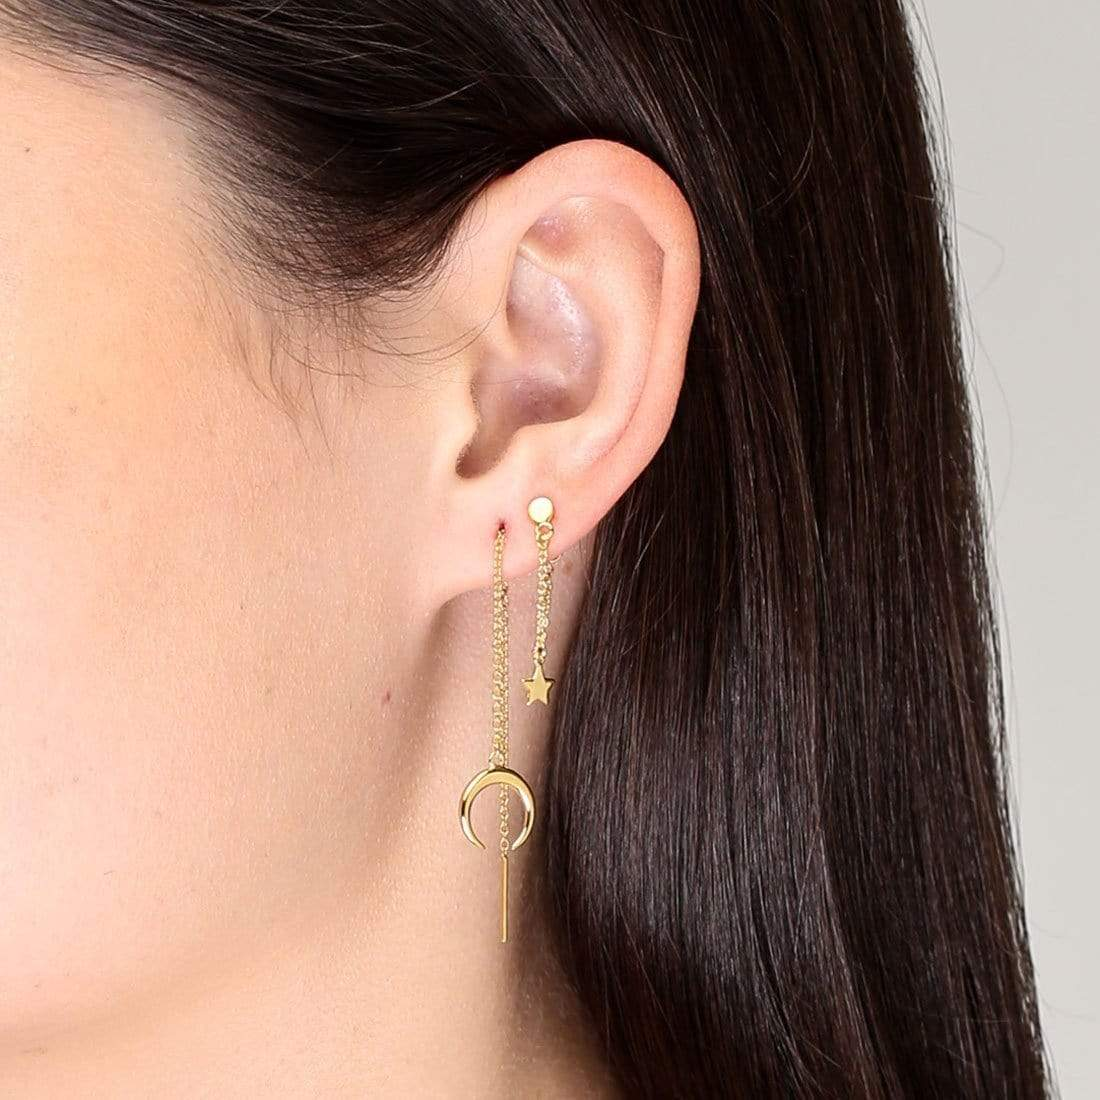 Midsummer Star Earrings Gold Moon Drop Threaders